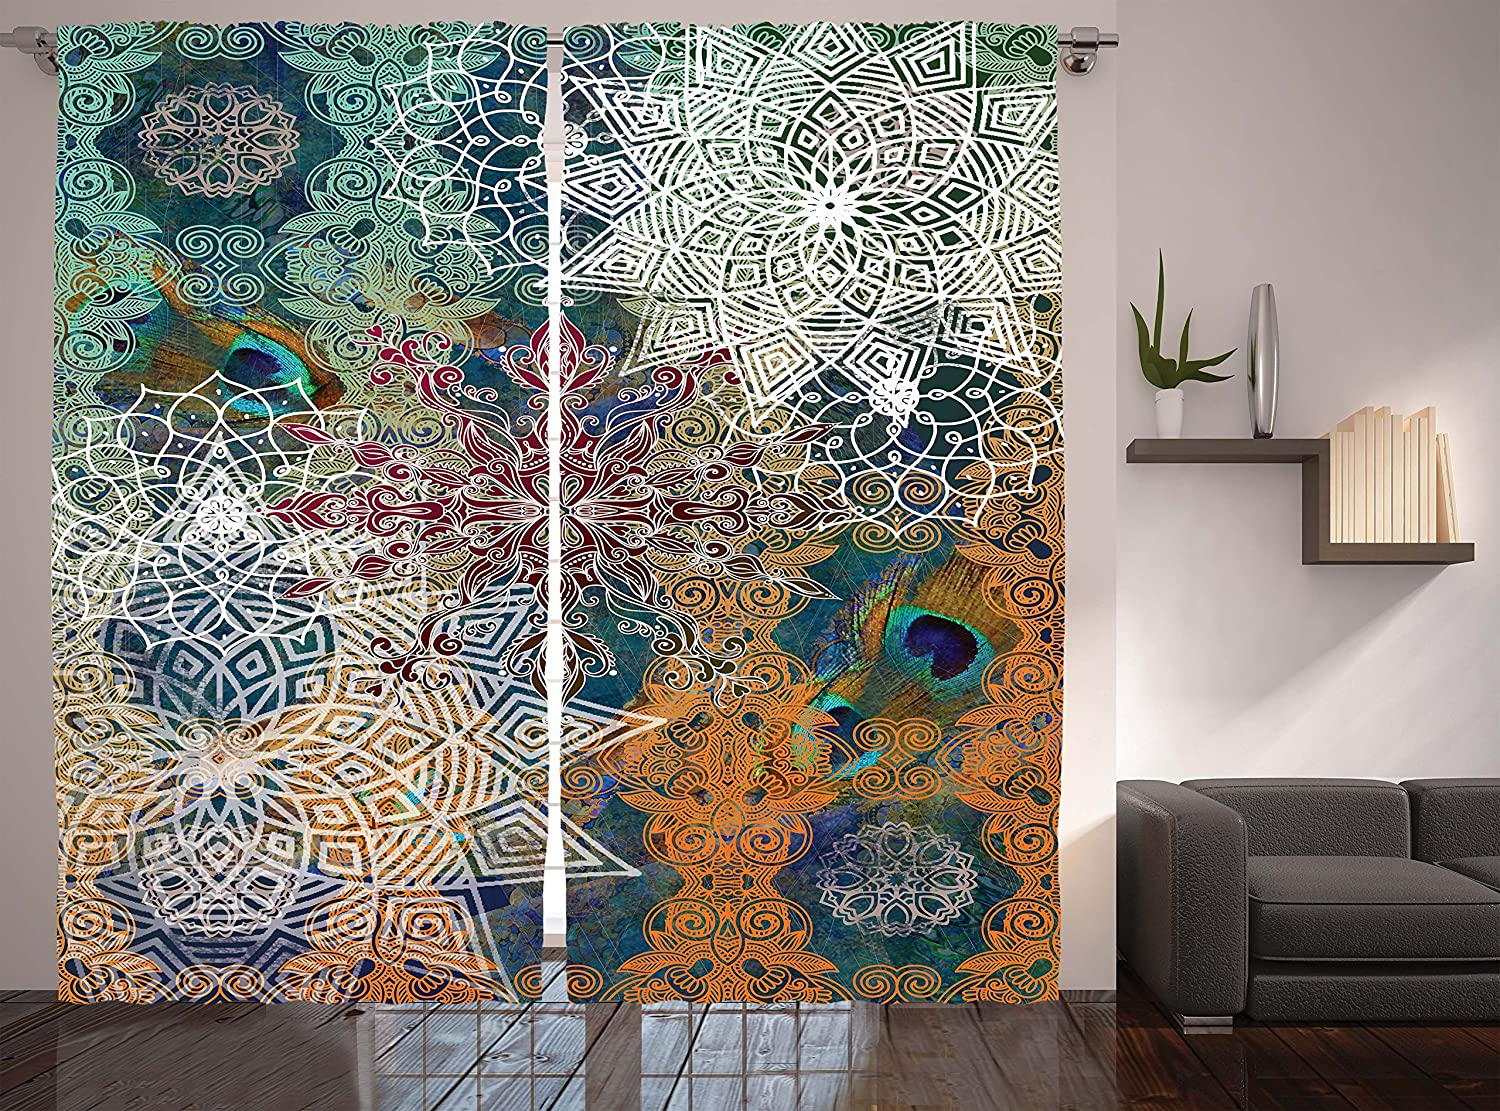 Curtains Bohemian Yoga Decor By Ambesonne Medallion Damask Star Patchwork Octagon Peacock Feather Living Room Bedroom Curtain 2 Panels Set 108 X 90